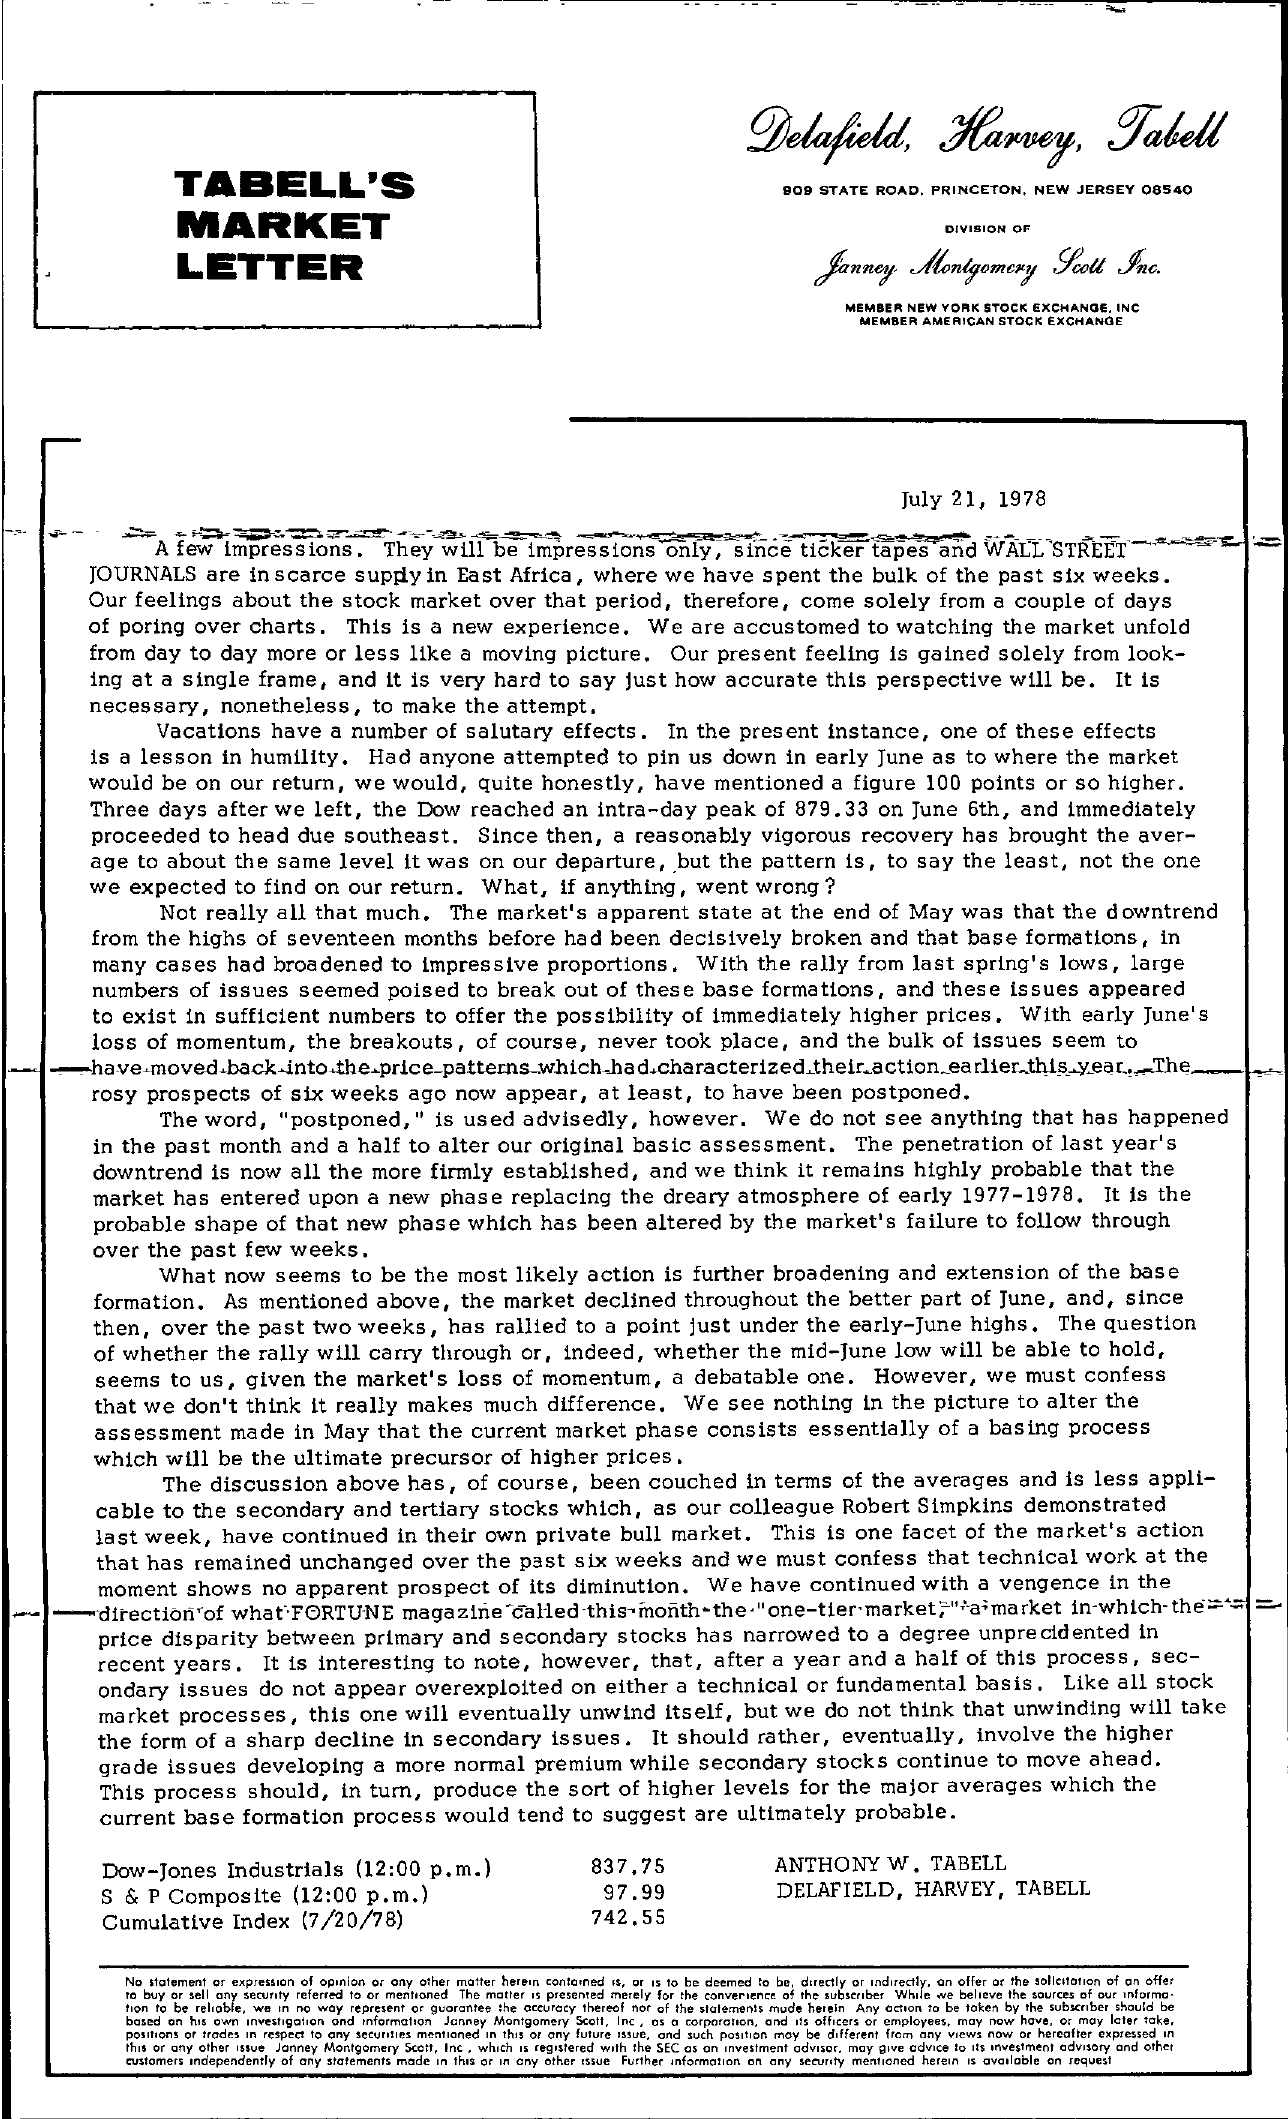 Tabell's Market Letter - July 21, 1978